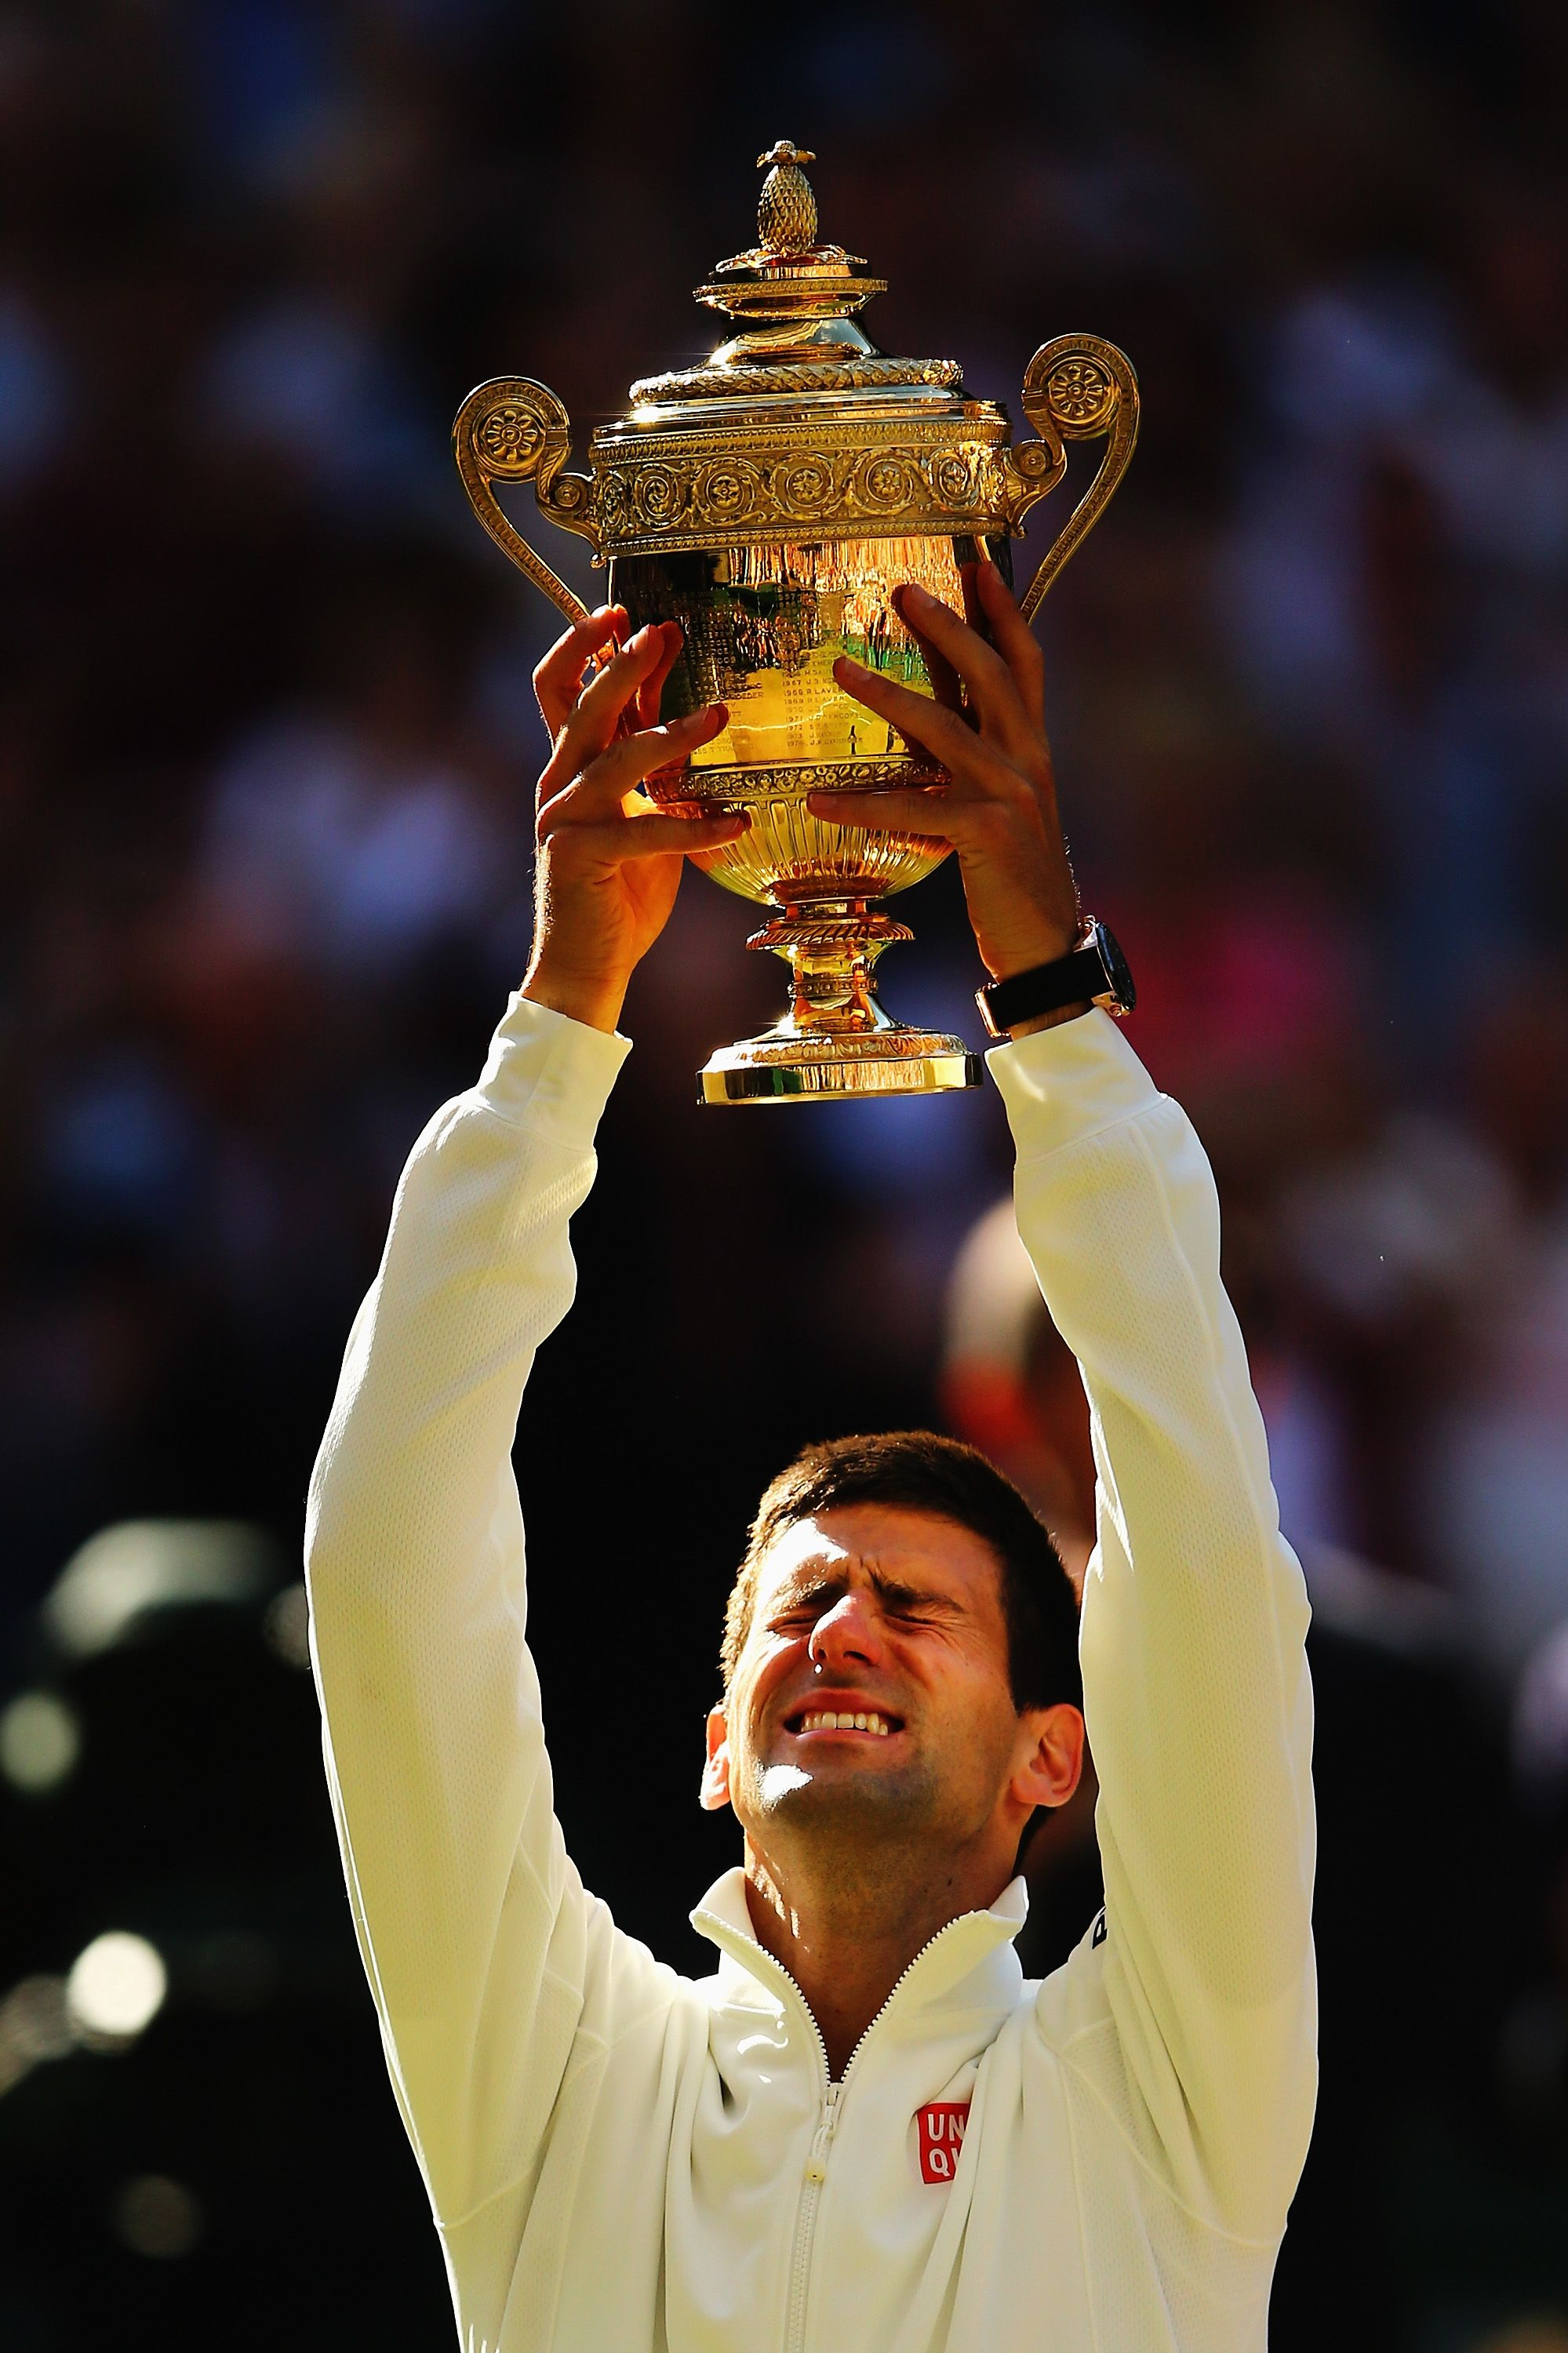 Novak Djokovic Of Serbia Poses With The Gentlemen S Singles Trophy Following His Victory In The Ge Tennis Professional Wimbledon Champions Tennis Championships